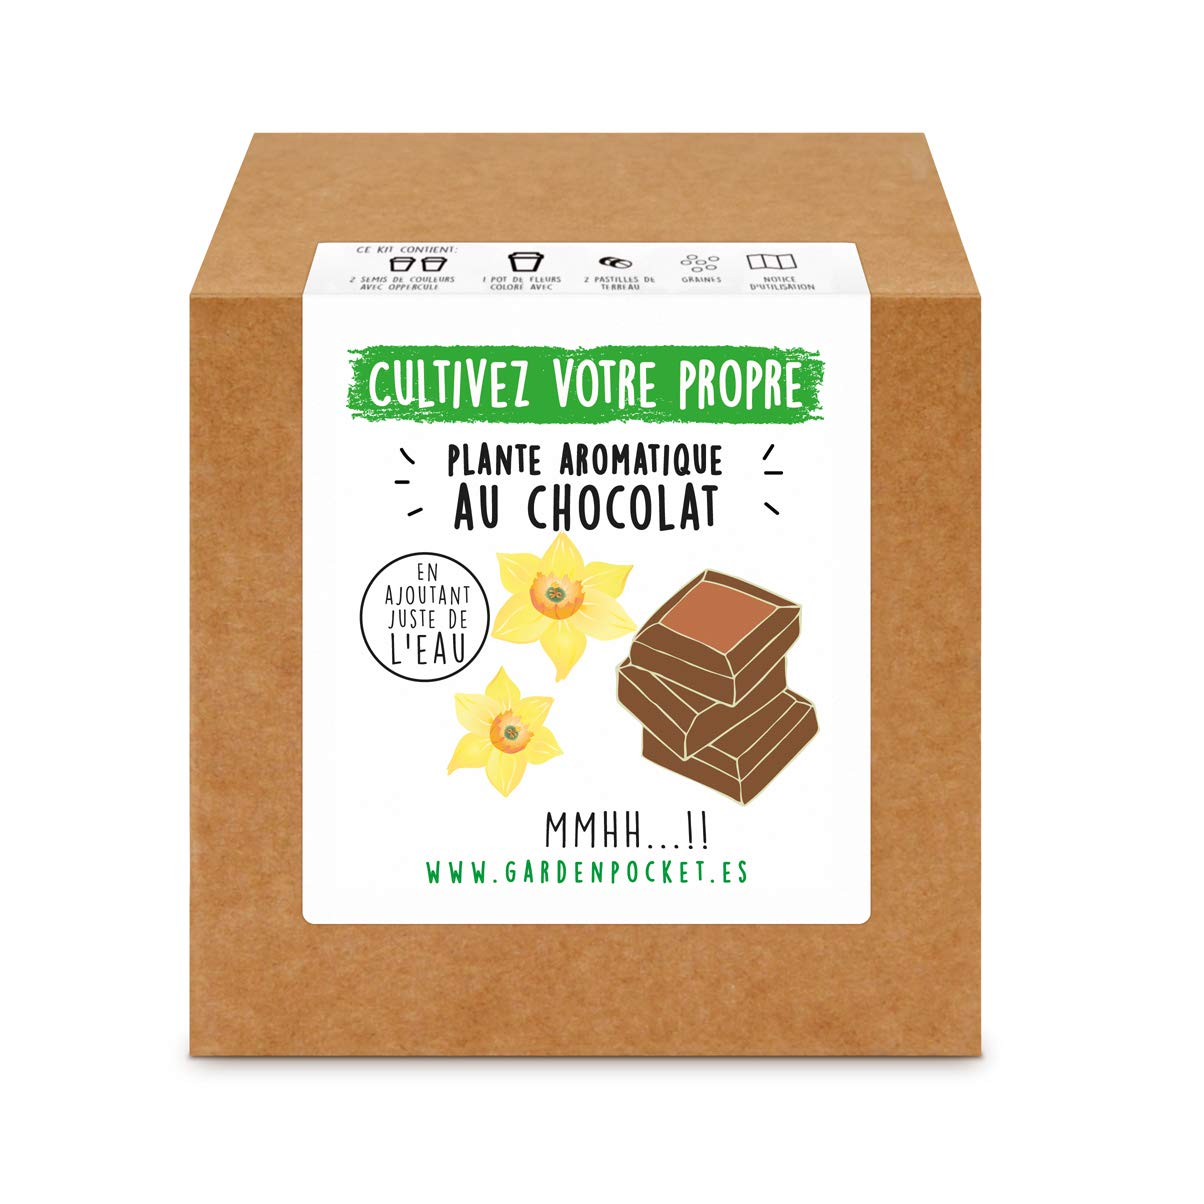 Garden Pocket - Kit de Culture de PLANTE AROMATIQUE AU CHOCOLAT